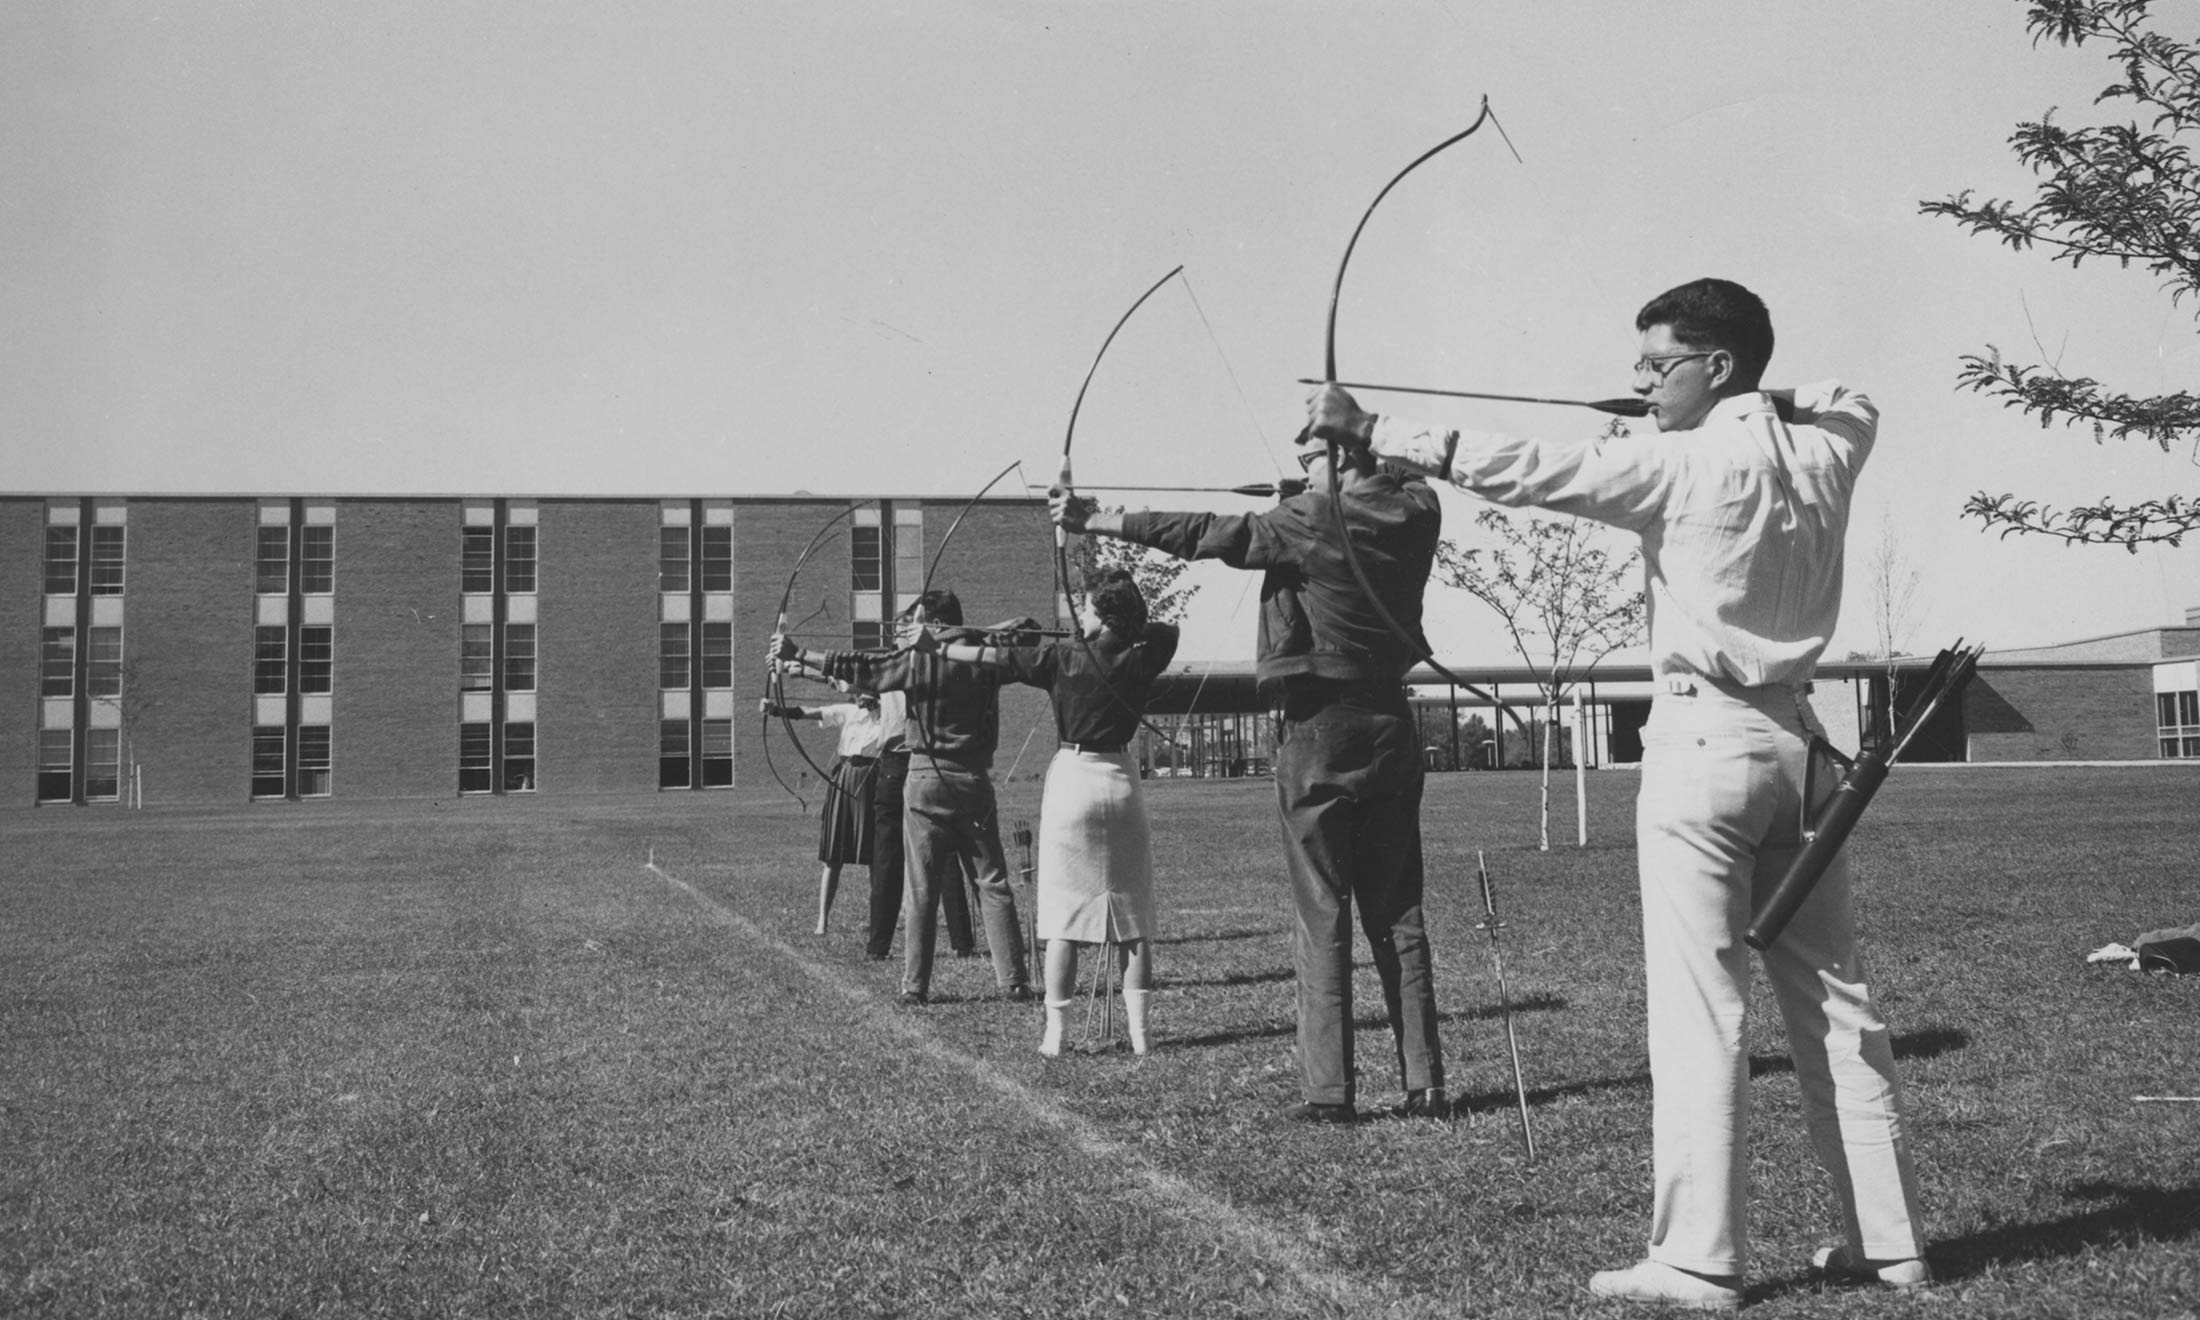 Students practice archery at Oakland University